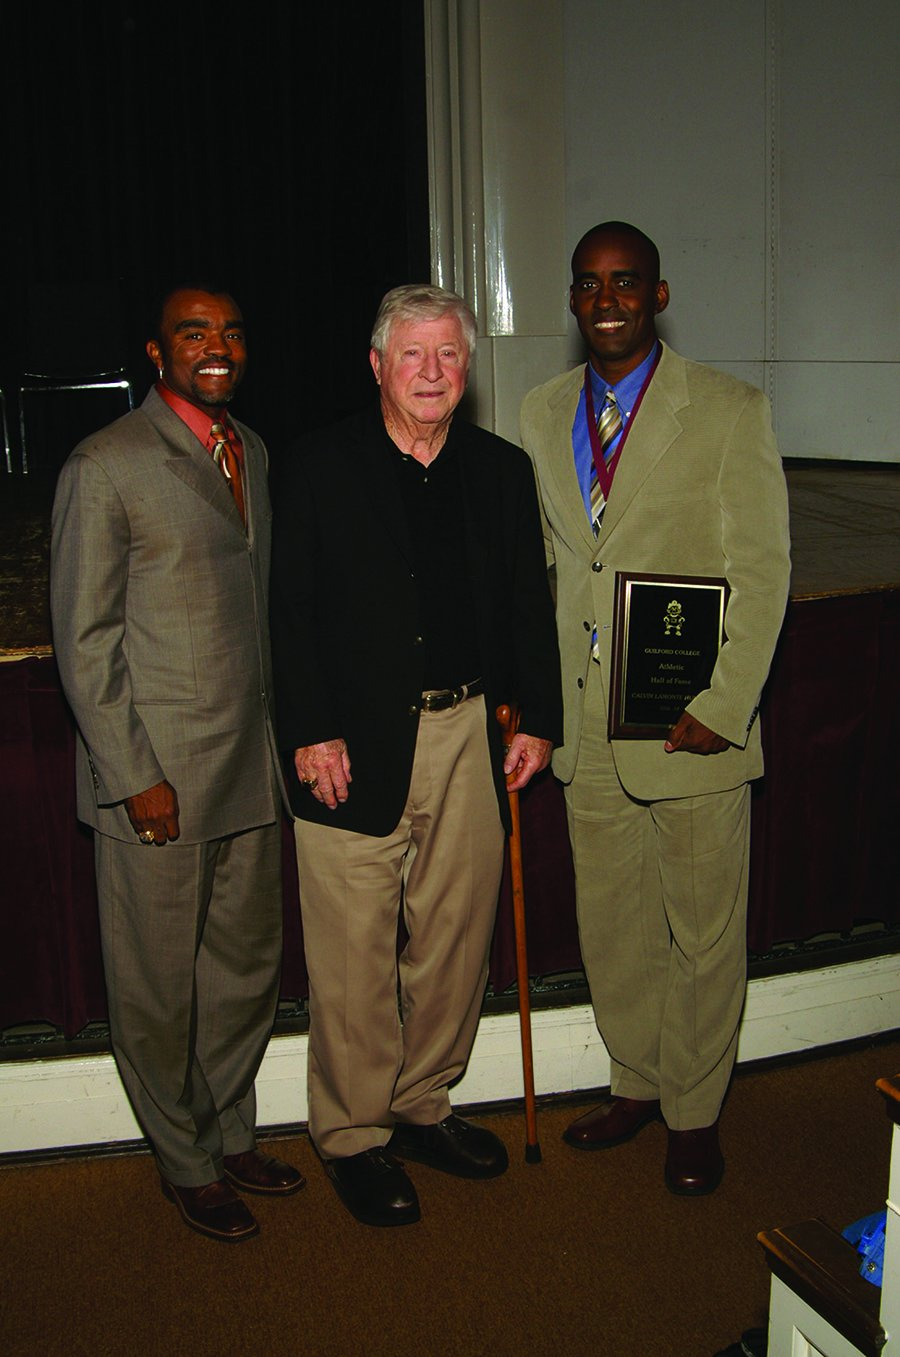 Former athletic director Herbert Appenzeller (center) stands with former Major League Baseball player Tony Womack '92 (left) and Guilford College football quarterback and current Associate Professor of Sport Management Calvin Hunter '92. Appenzeller joined Womack and Hunter as they were inducted into the 2006-2007 Guilford College Athletics Hall of Fame.//Photo courtesy Guilford Athletics.